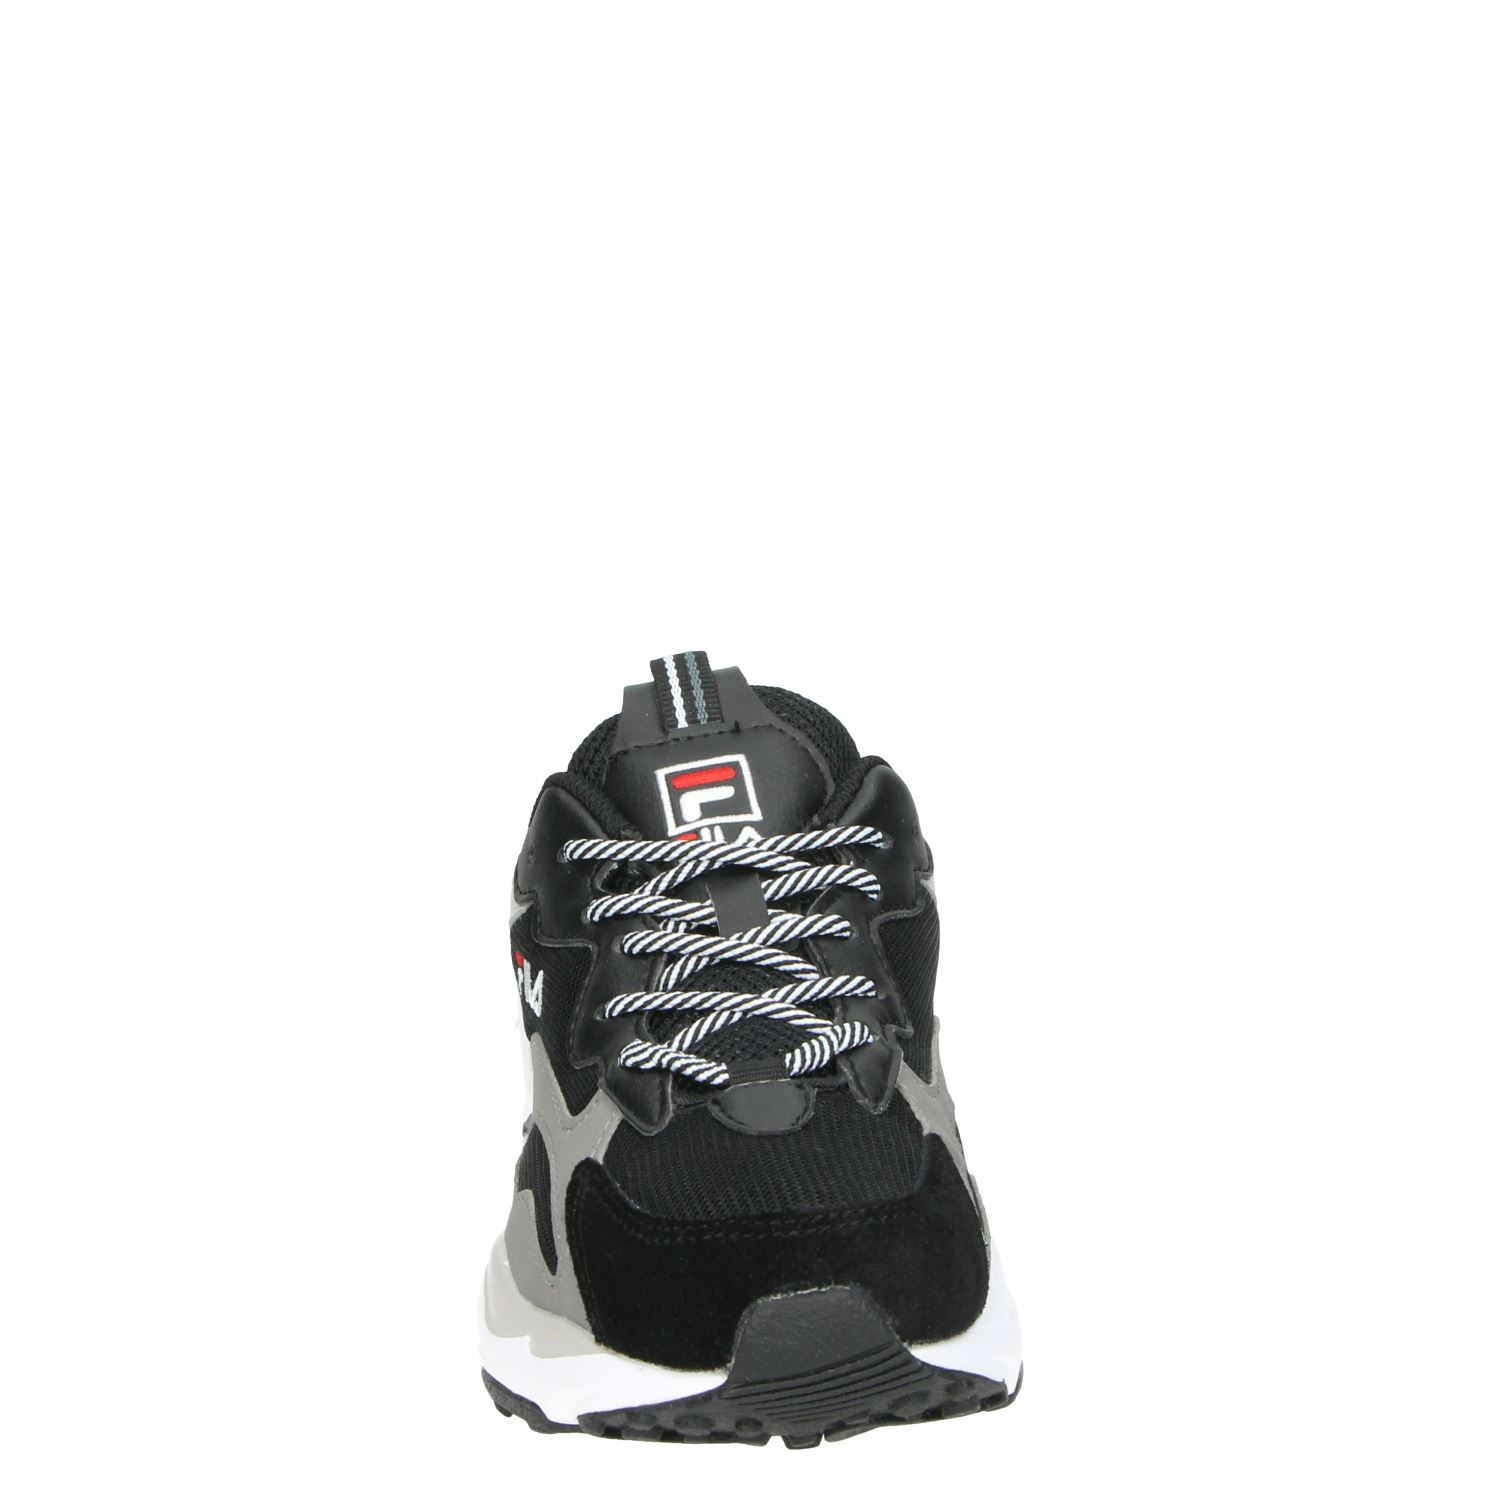 Fila Ray Tracer Low dames dad sneakers zwart